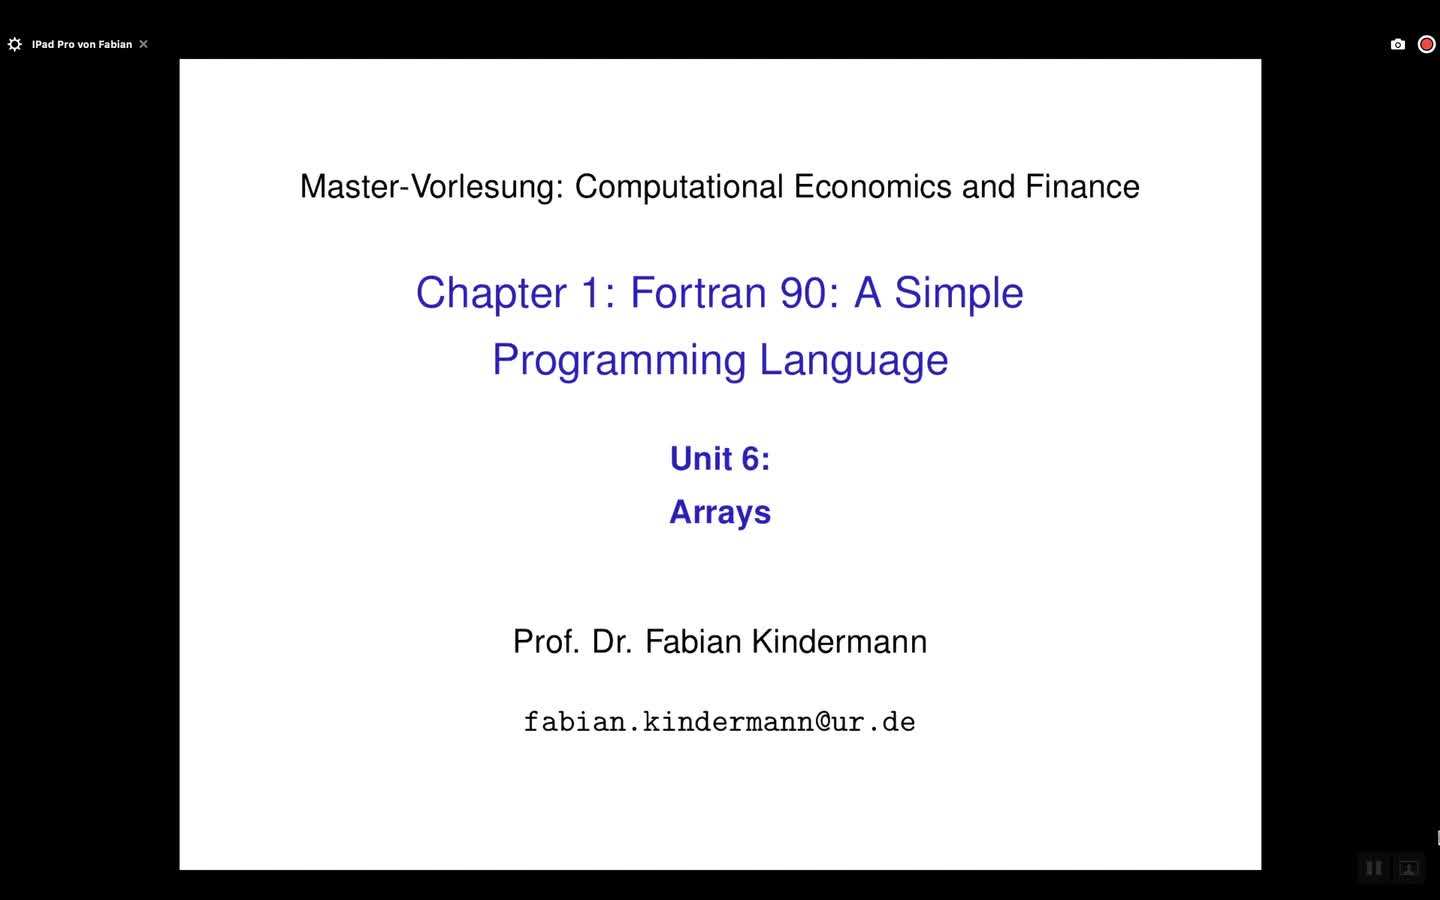 Chapter 1 - Unit 6 - Arrays